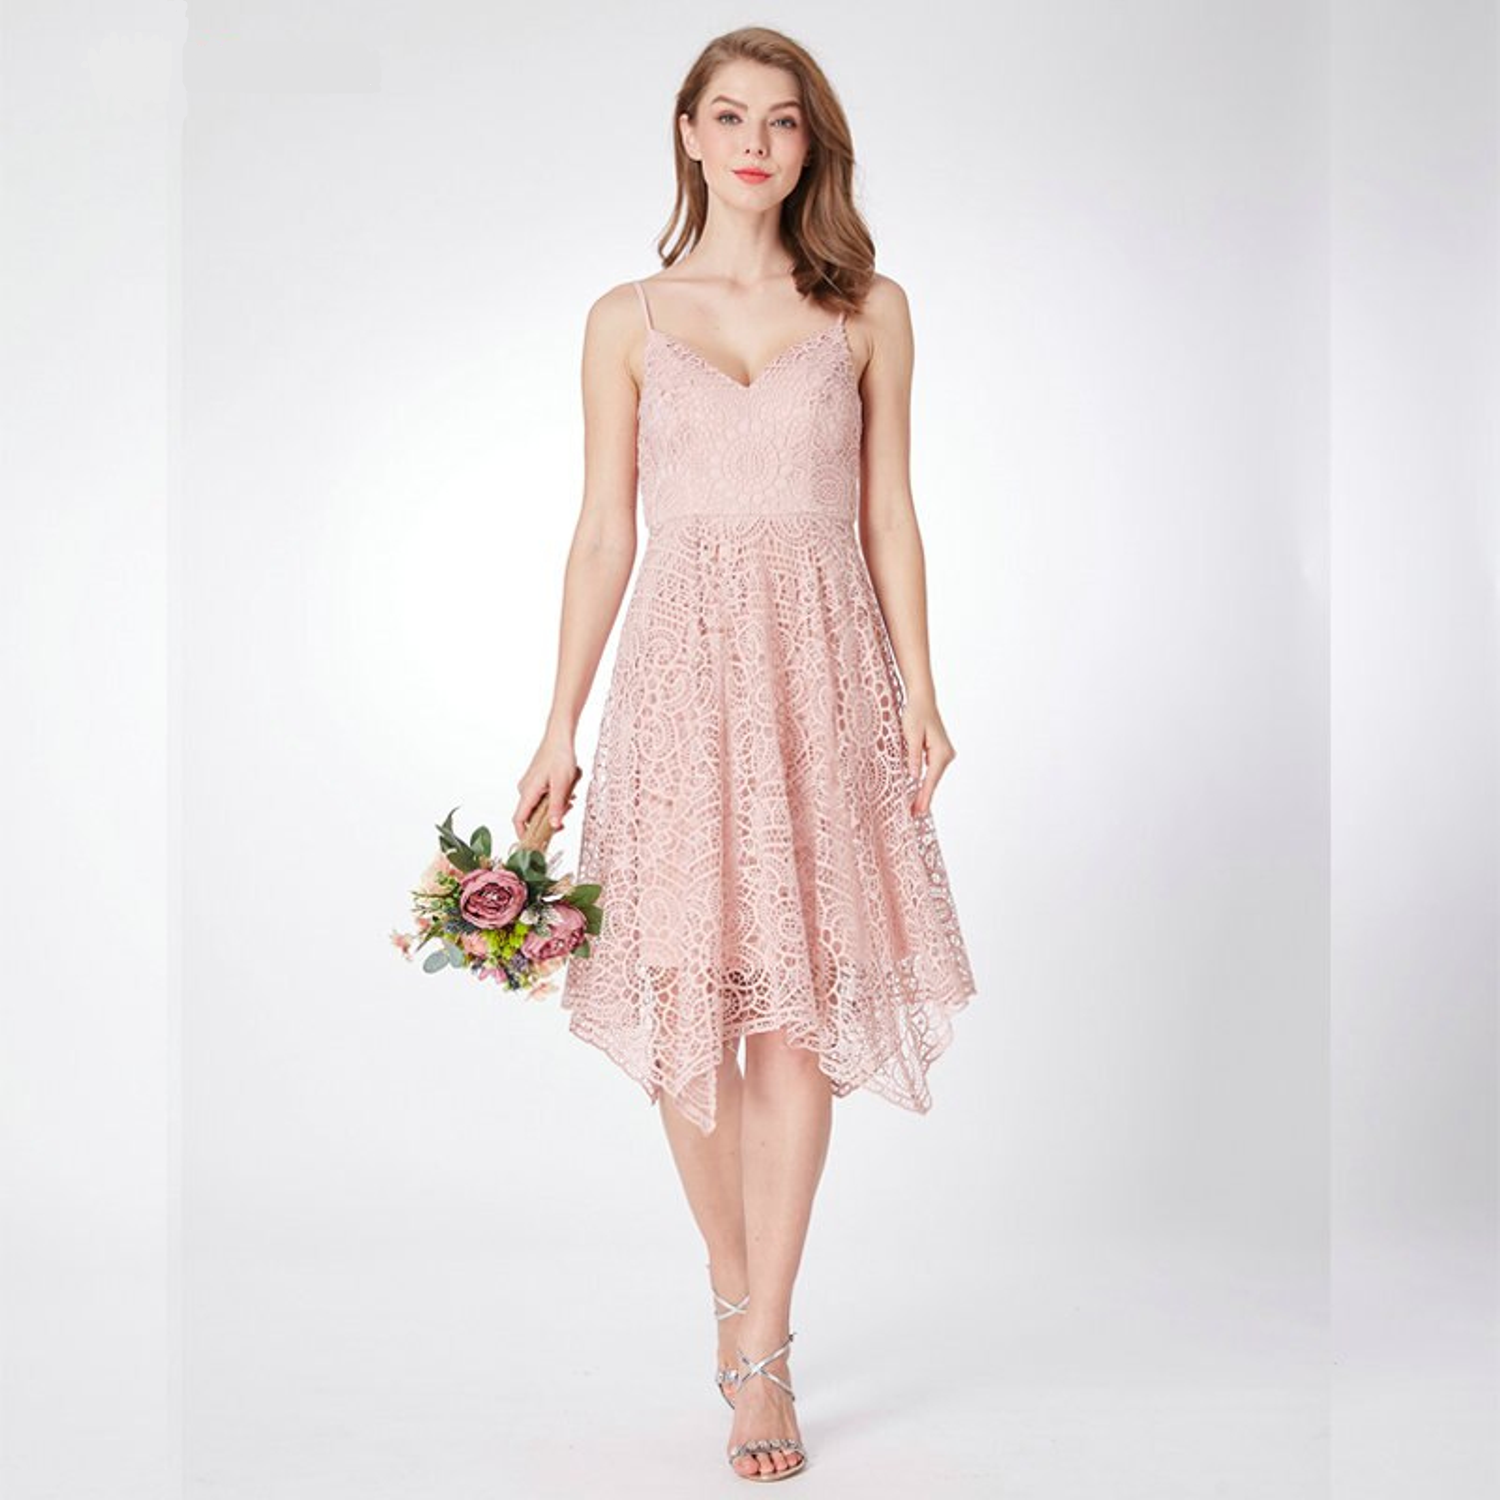 Knee-length bridesmaid dress